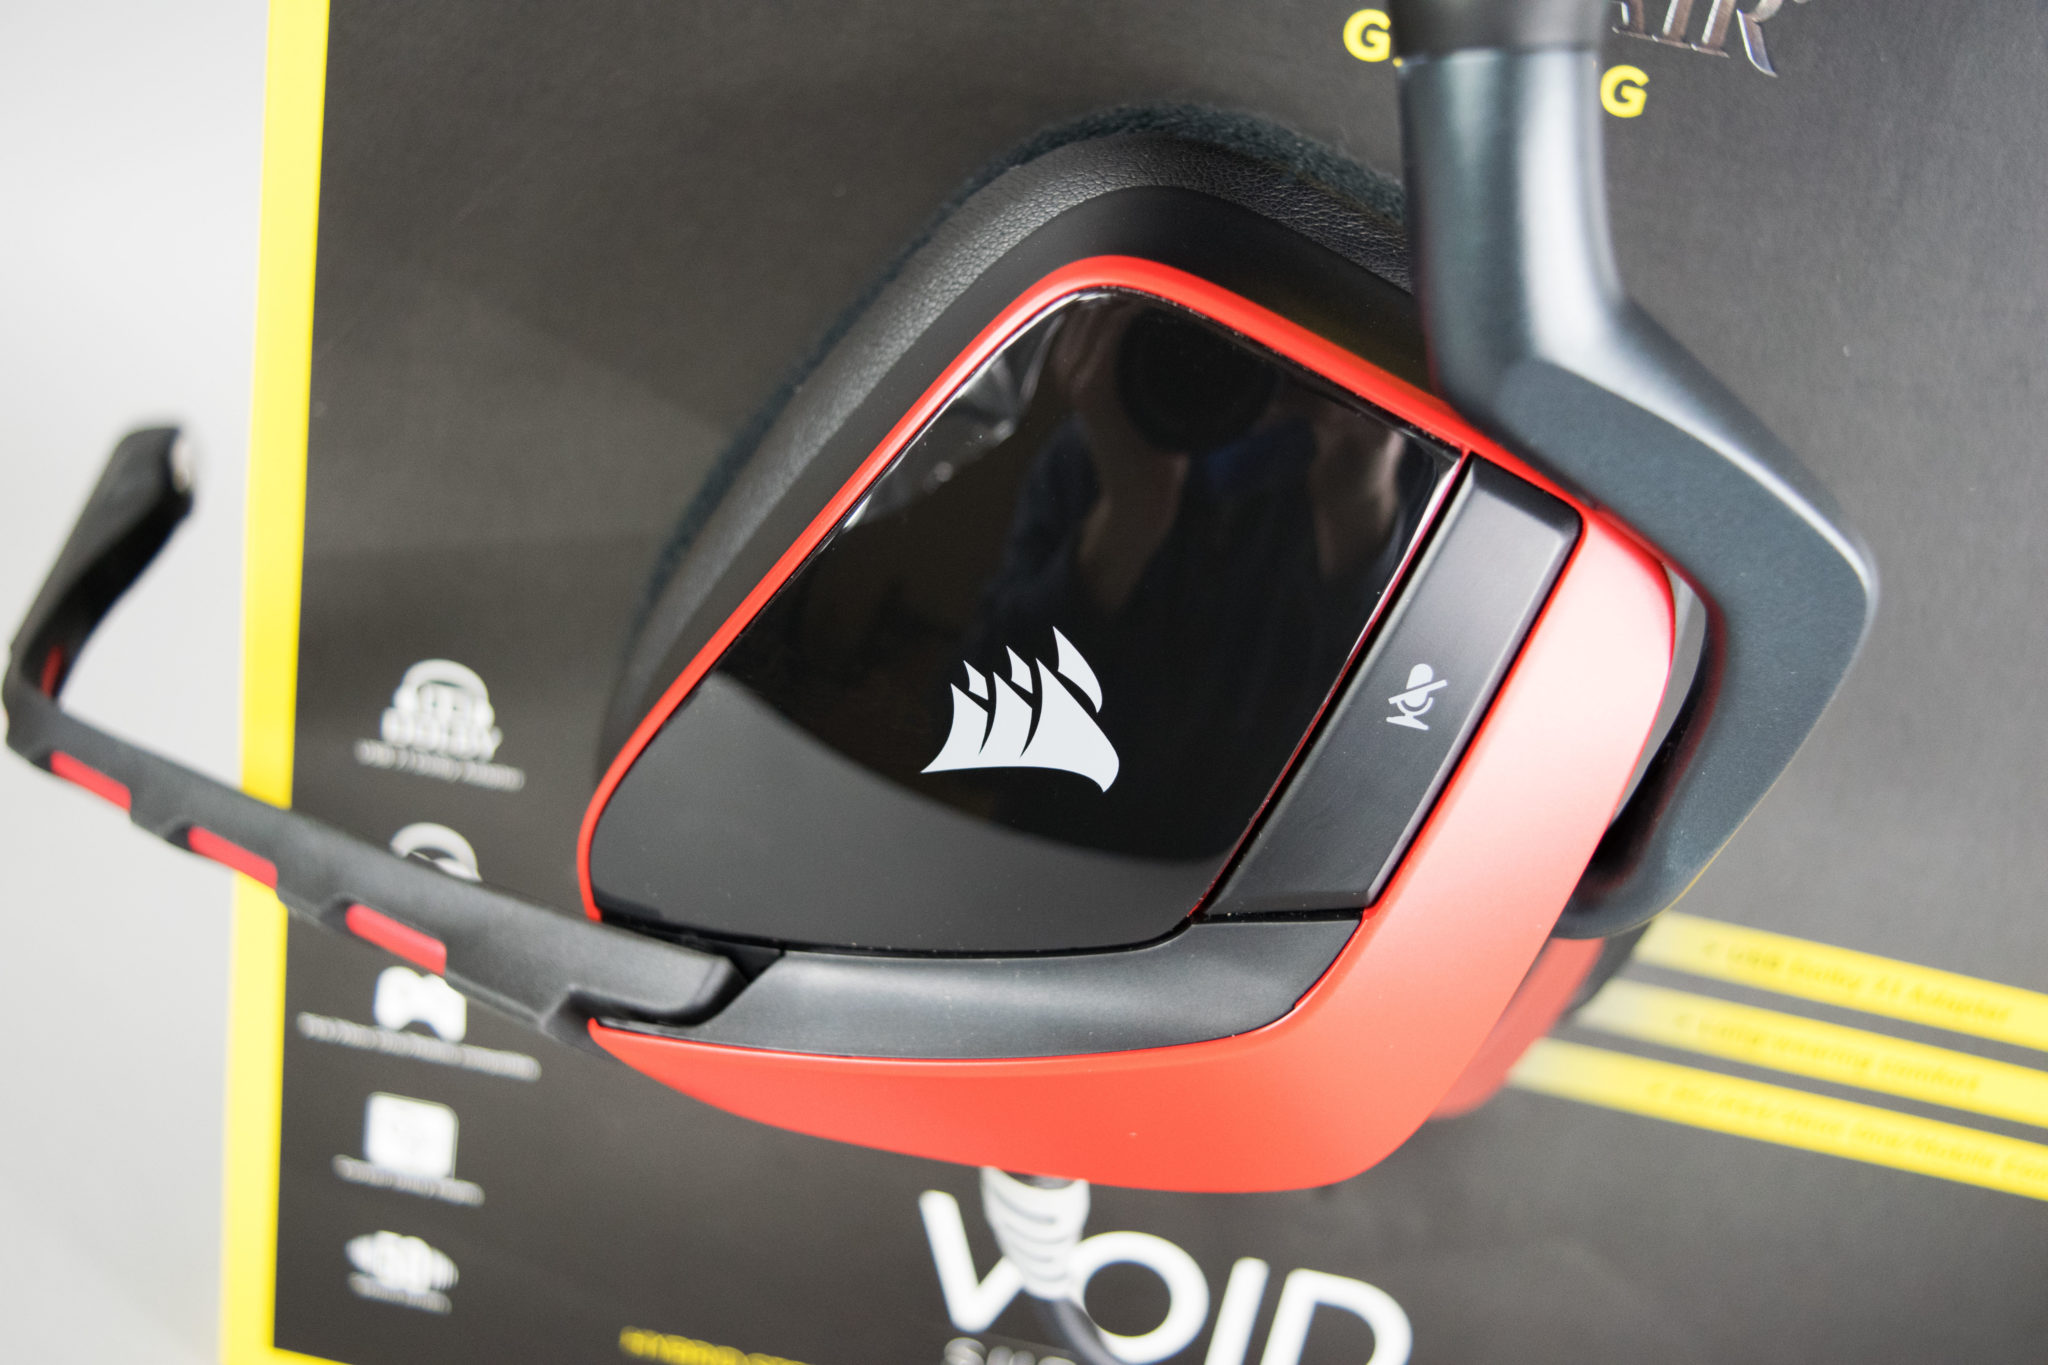 Corsair VOID Surround Hybrid Gaming Headset Review